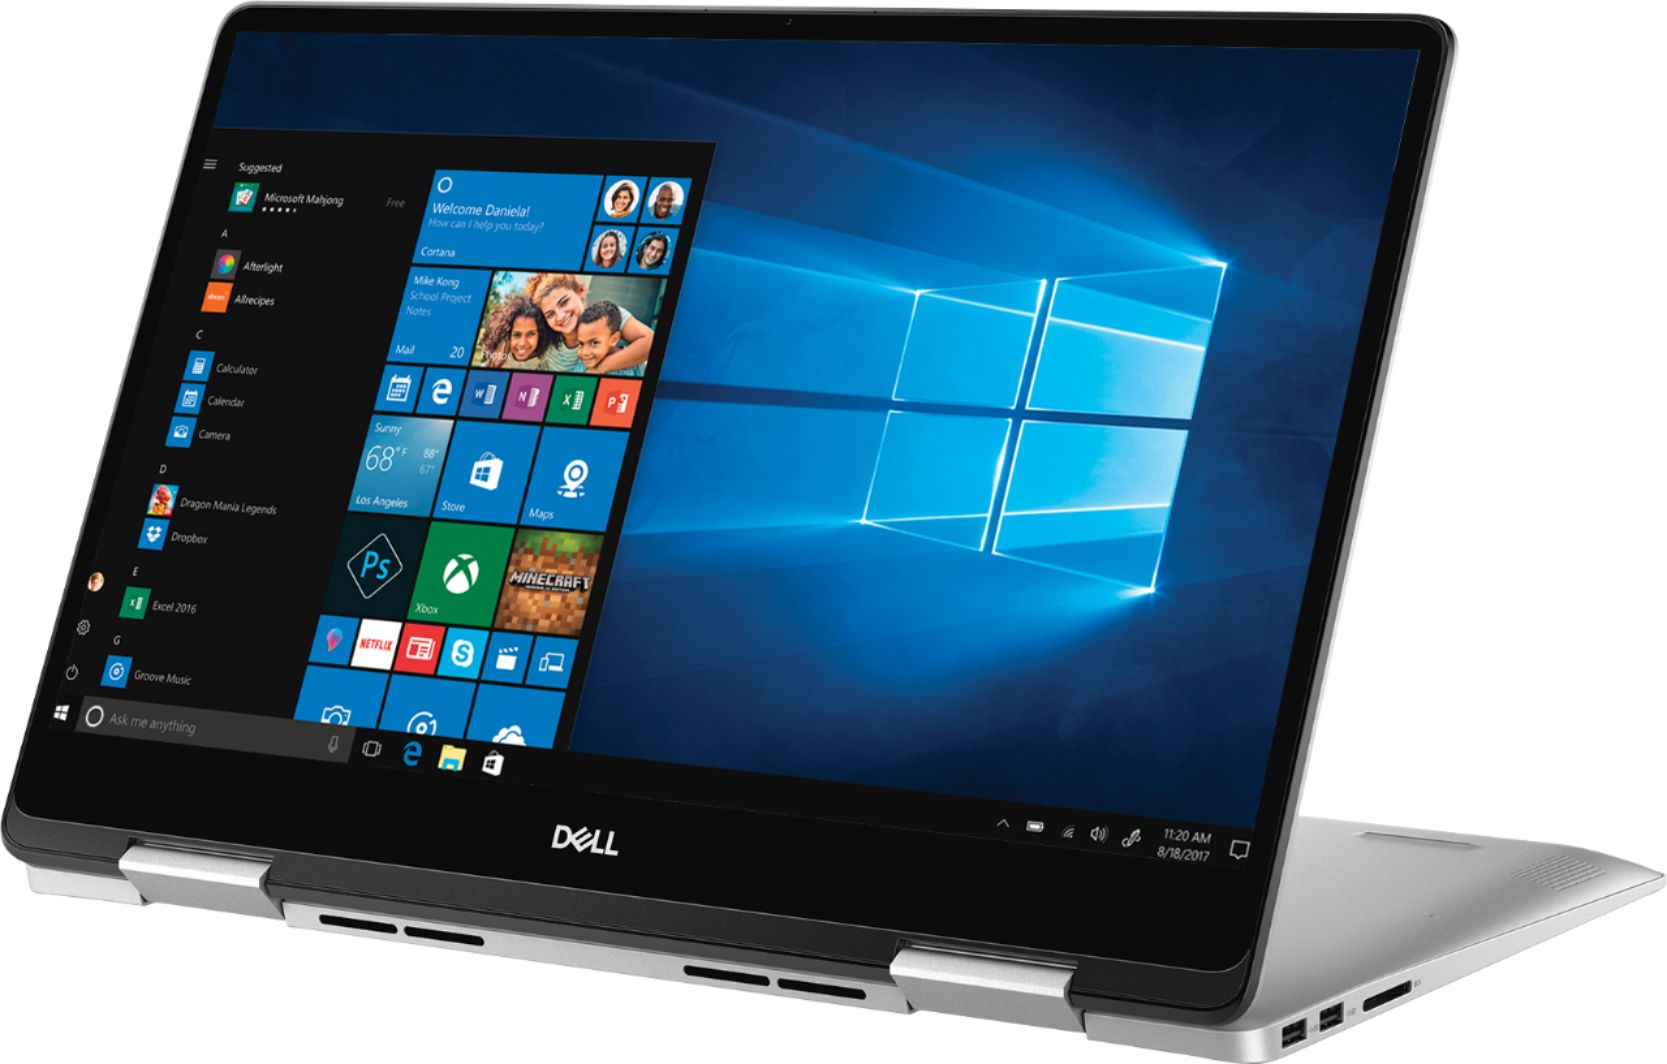 "Left Zoom. Dell - Inspiron 2-in-1 15.6"" Geek Squad Certified Refurbished Touch-Screen Laptop - Intel Core i5 - 8GB Memory - 256GB SSD - Silver."